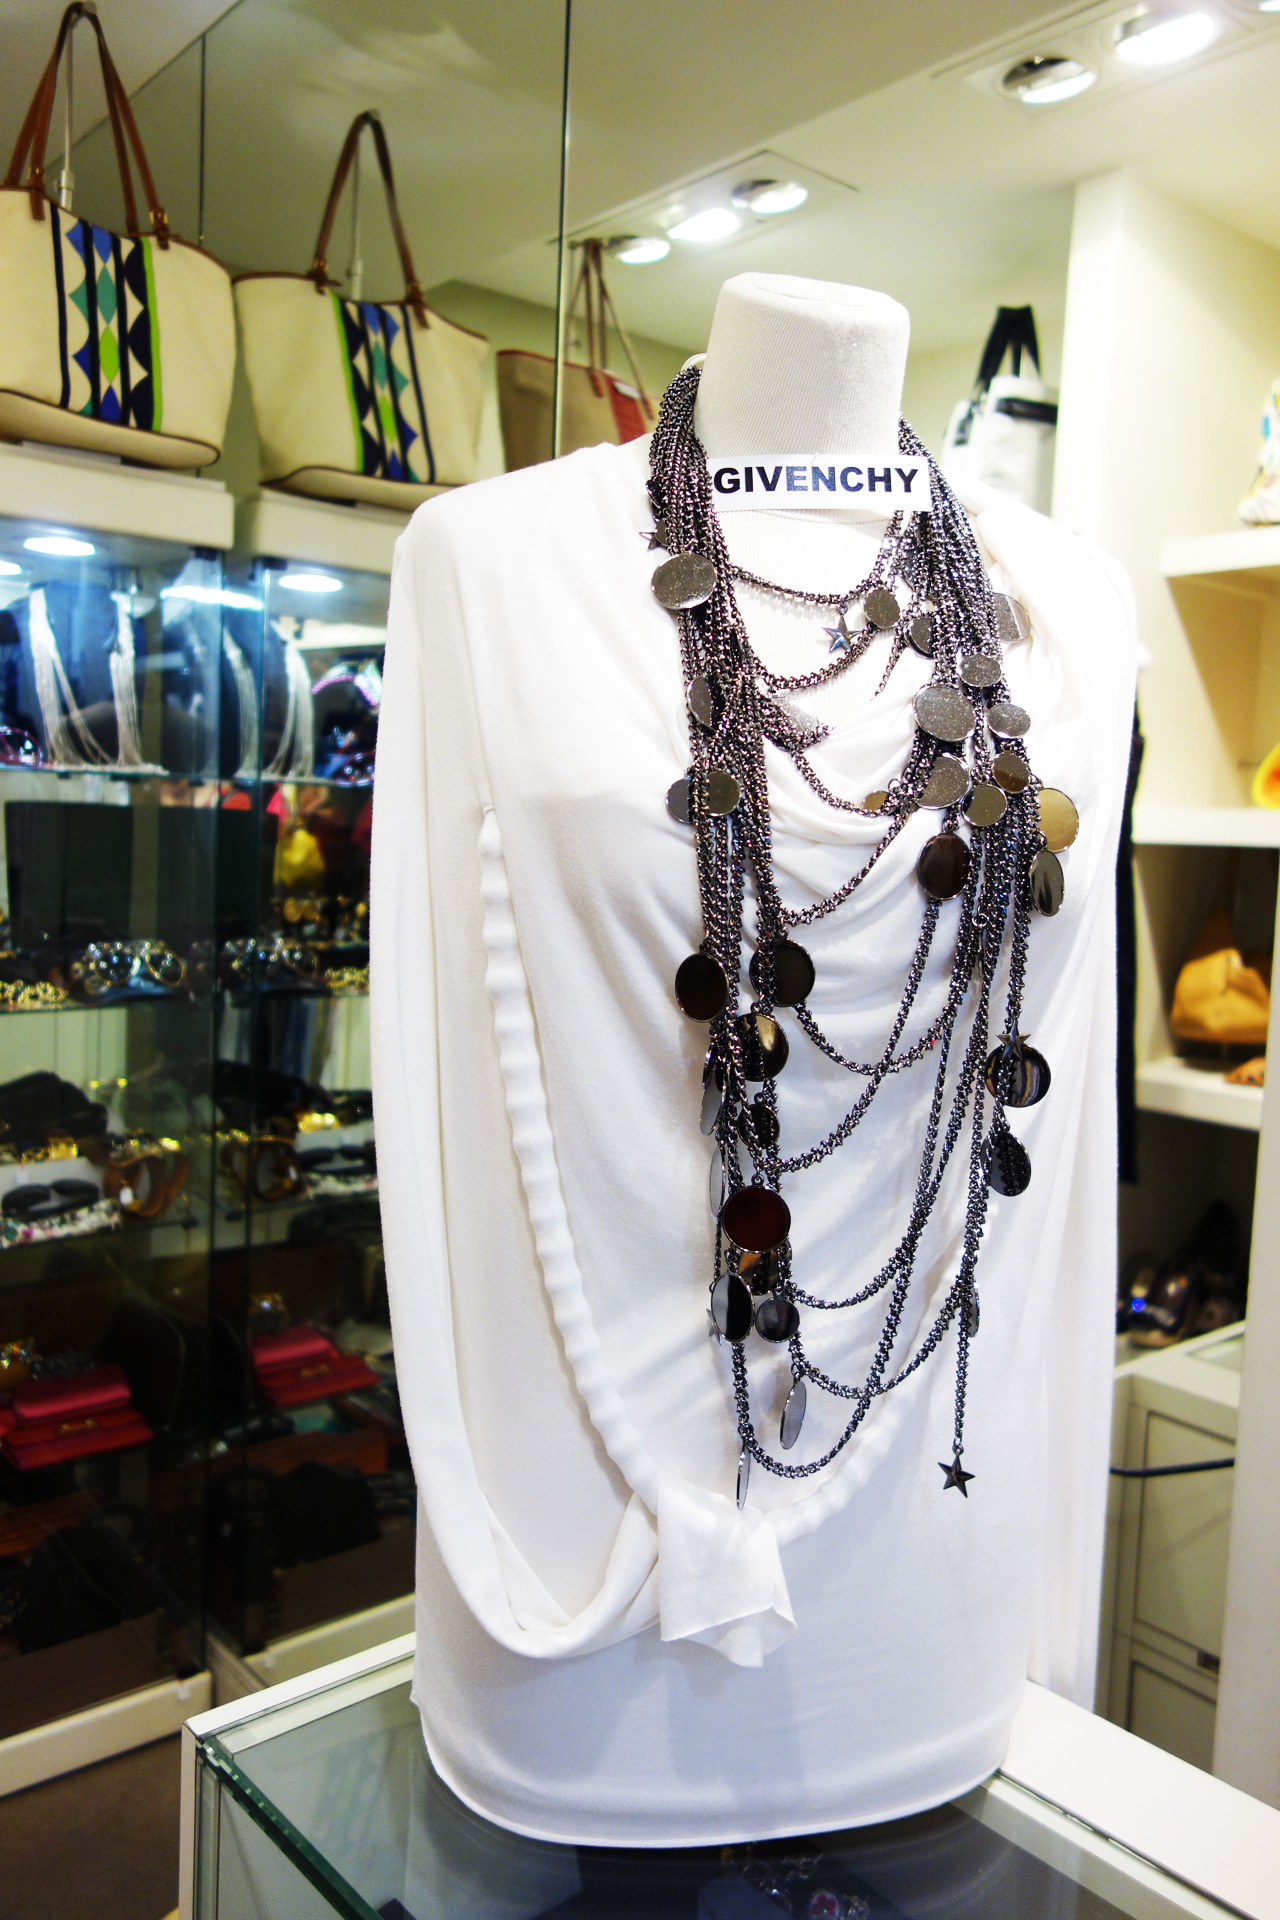 WK-Givenchy-necklace